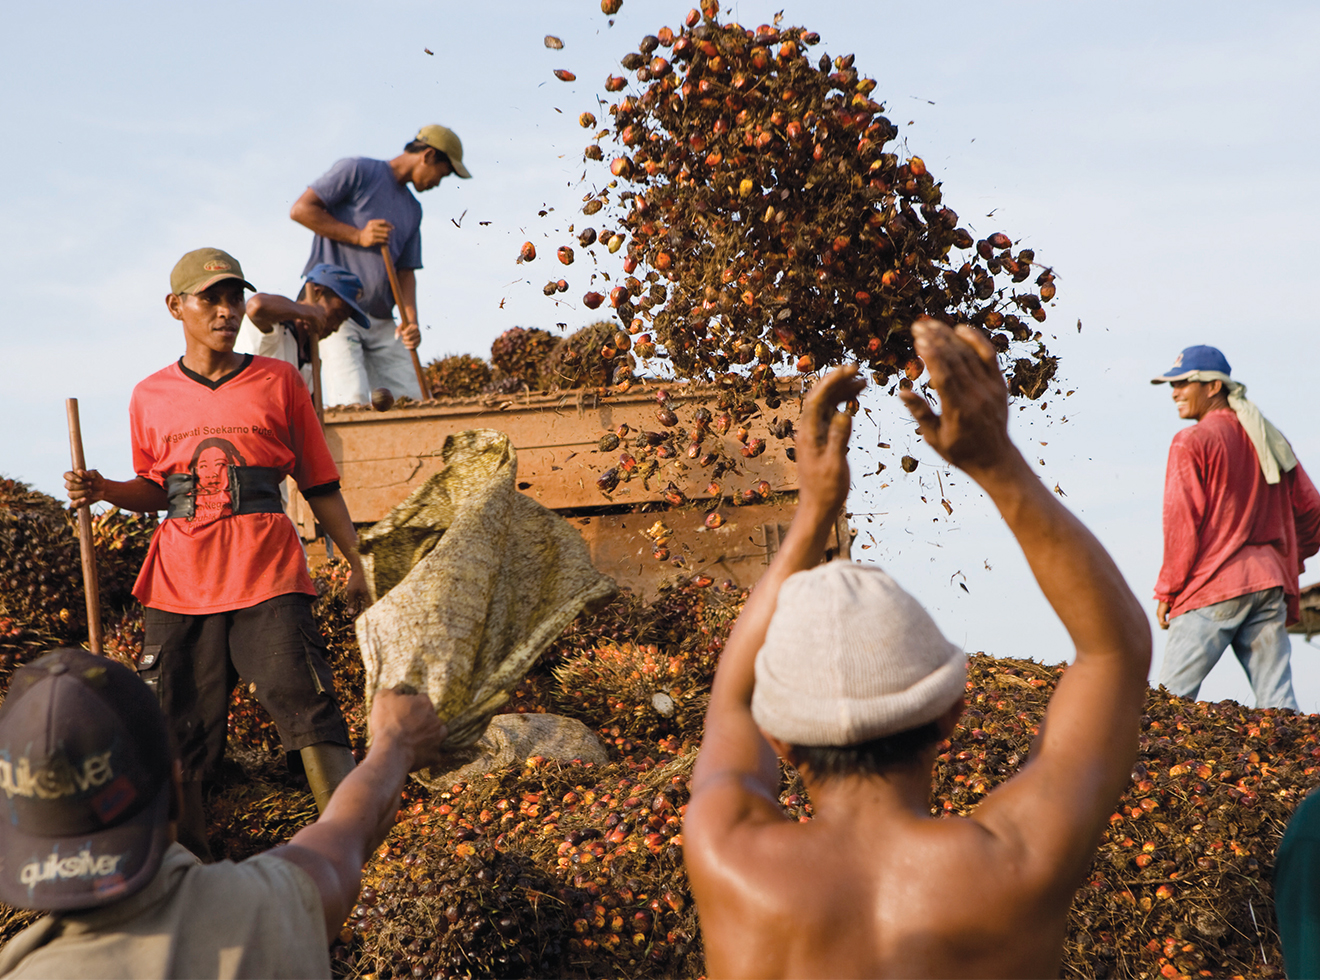 Workers unload oil-palm bunches in preparation for processing.